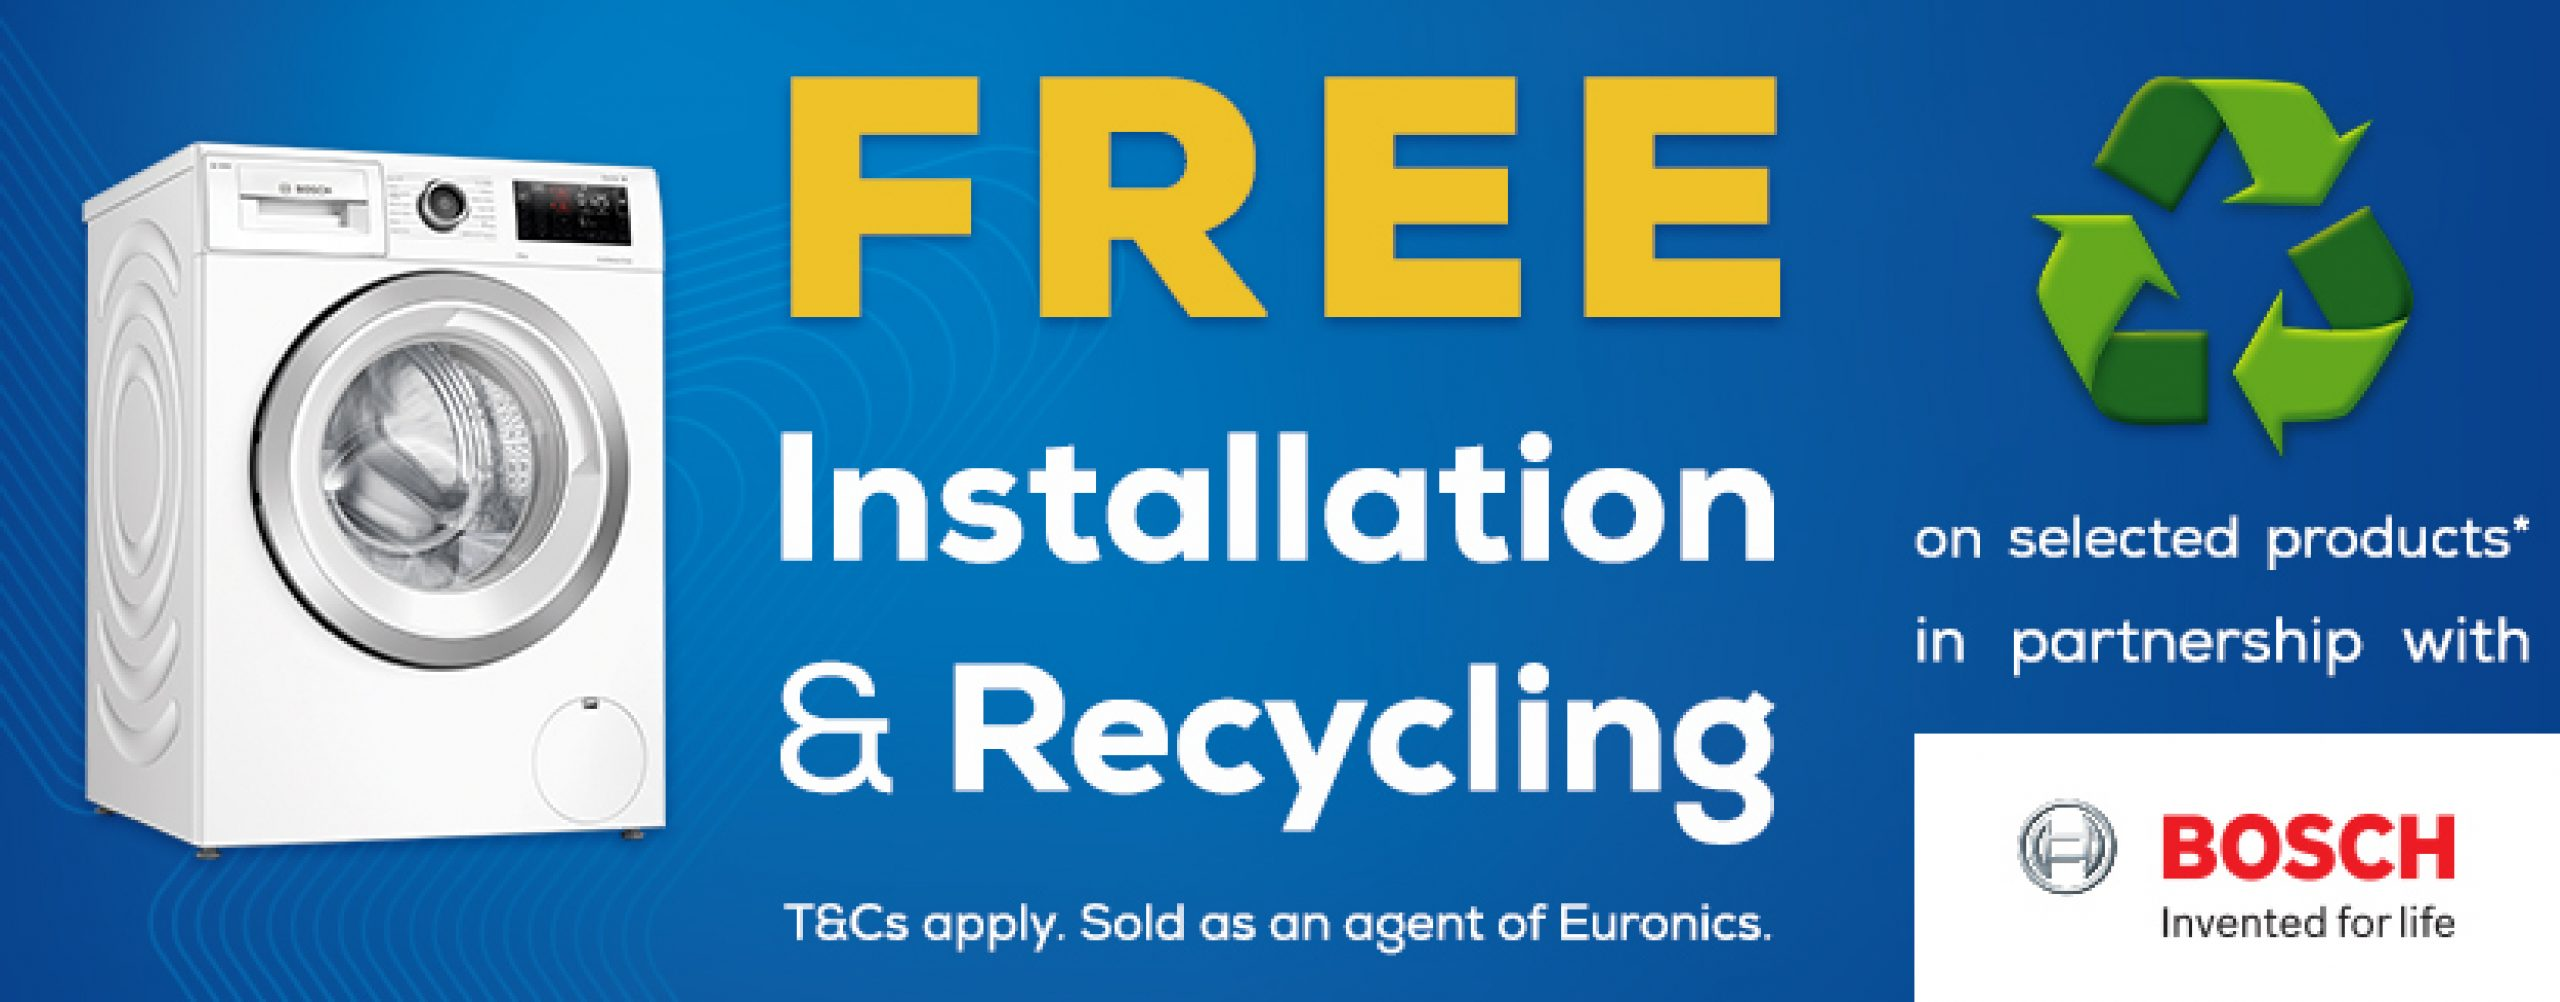 Bosch Free Install & Recycle